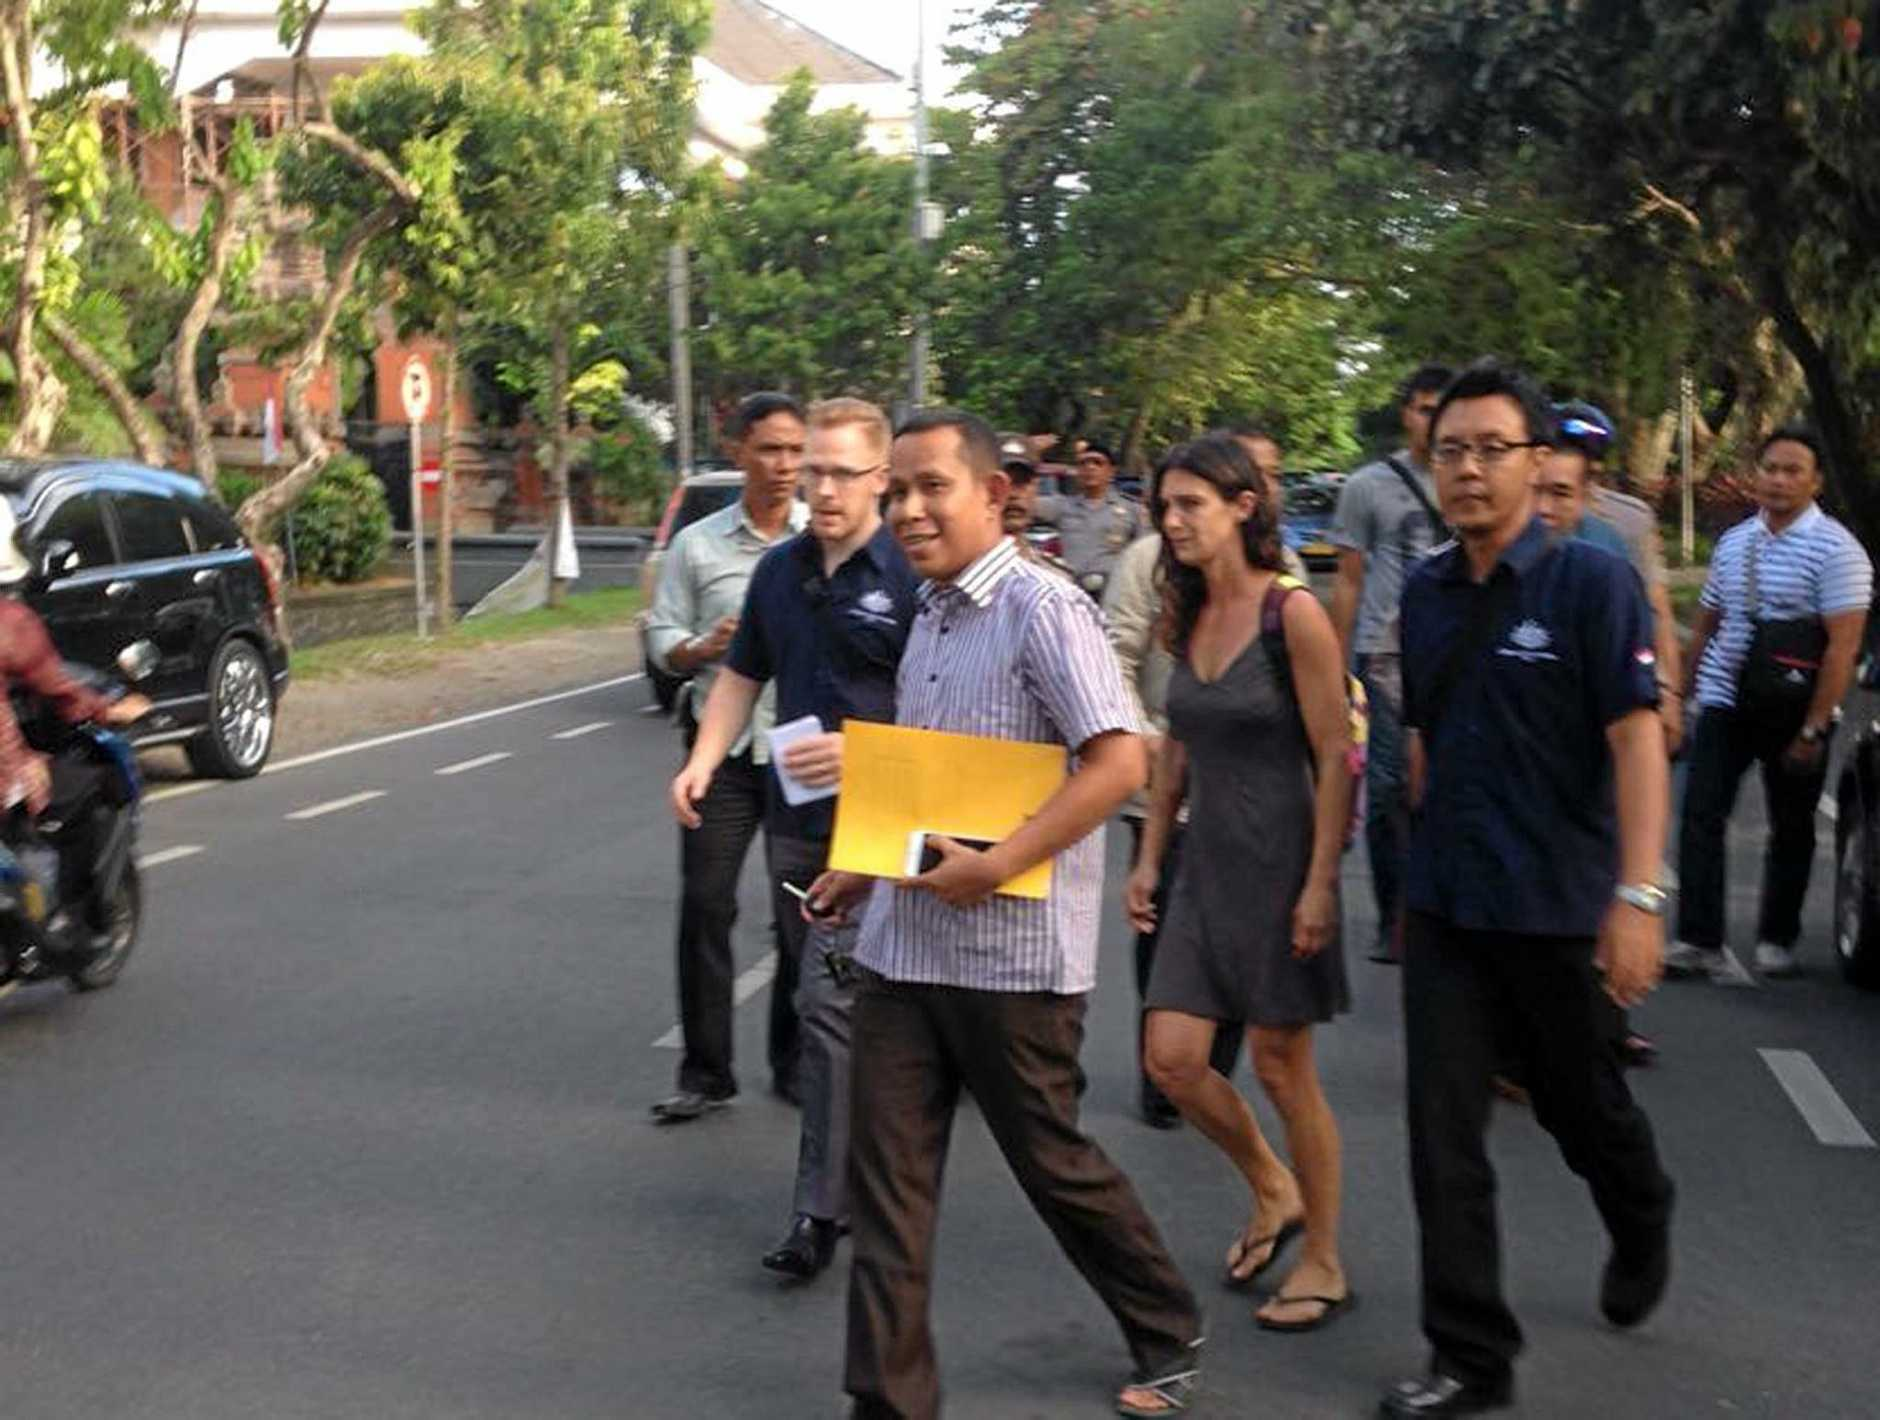 Police in Bali have arrested an Australian women and another man wanted for questioning over the death of an Indonesian policeman. Australian woman Sara Connor (C) and a British man David James Taylor, 33, were taken into custody in Denpasar at 2pm on Friday, August 19, 2016. (AAP Image/Putra Sinulingga)